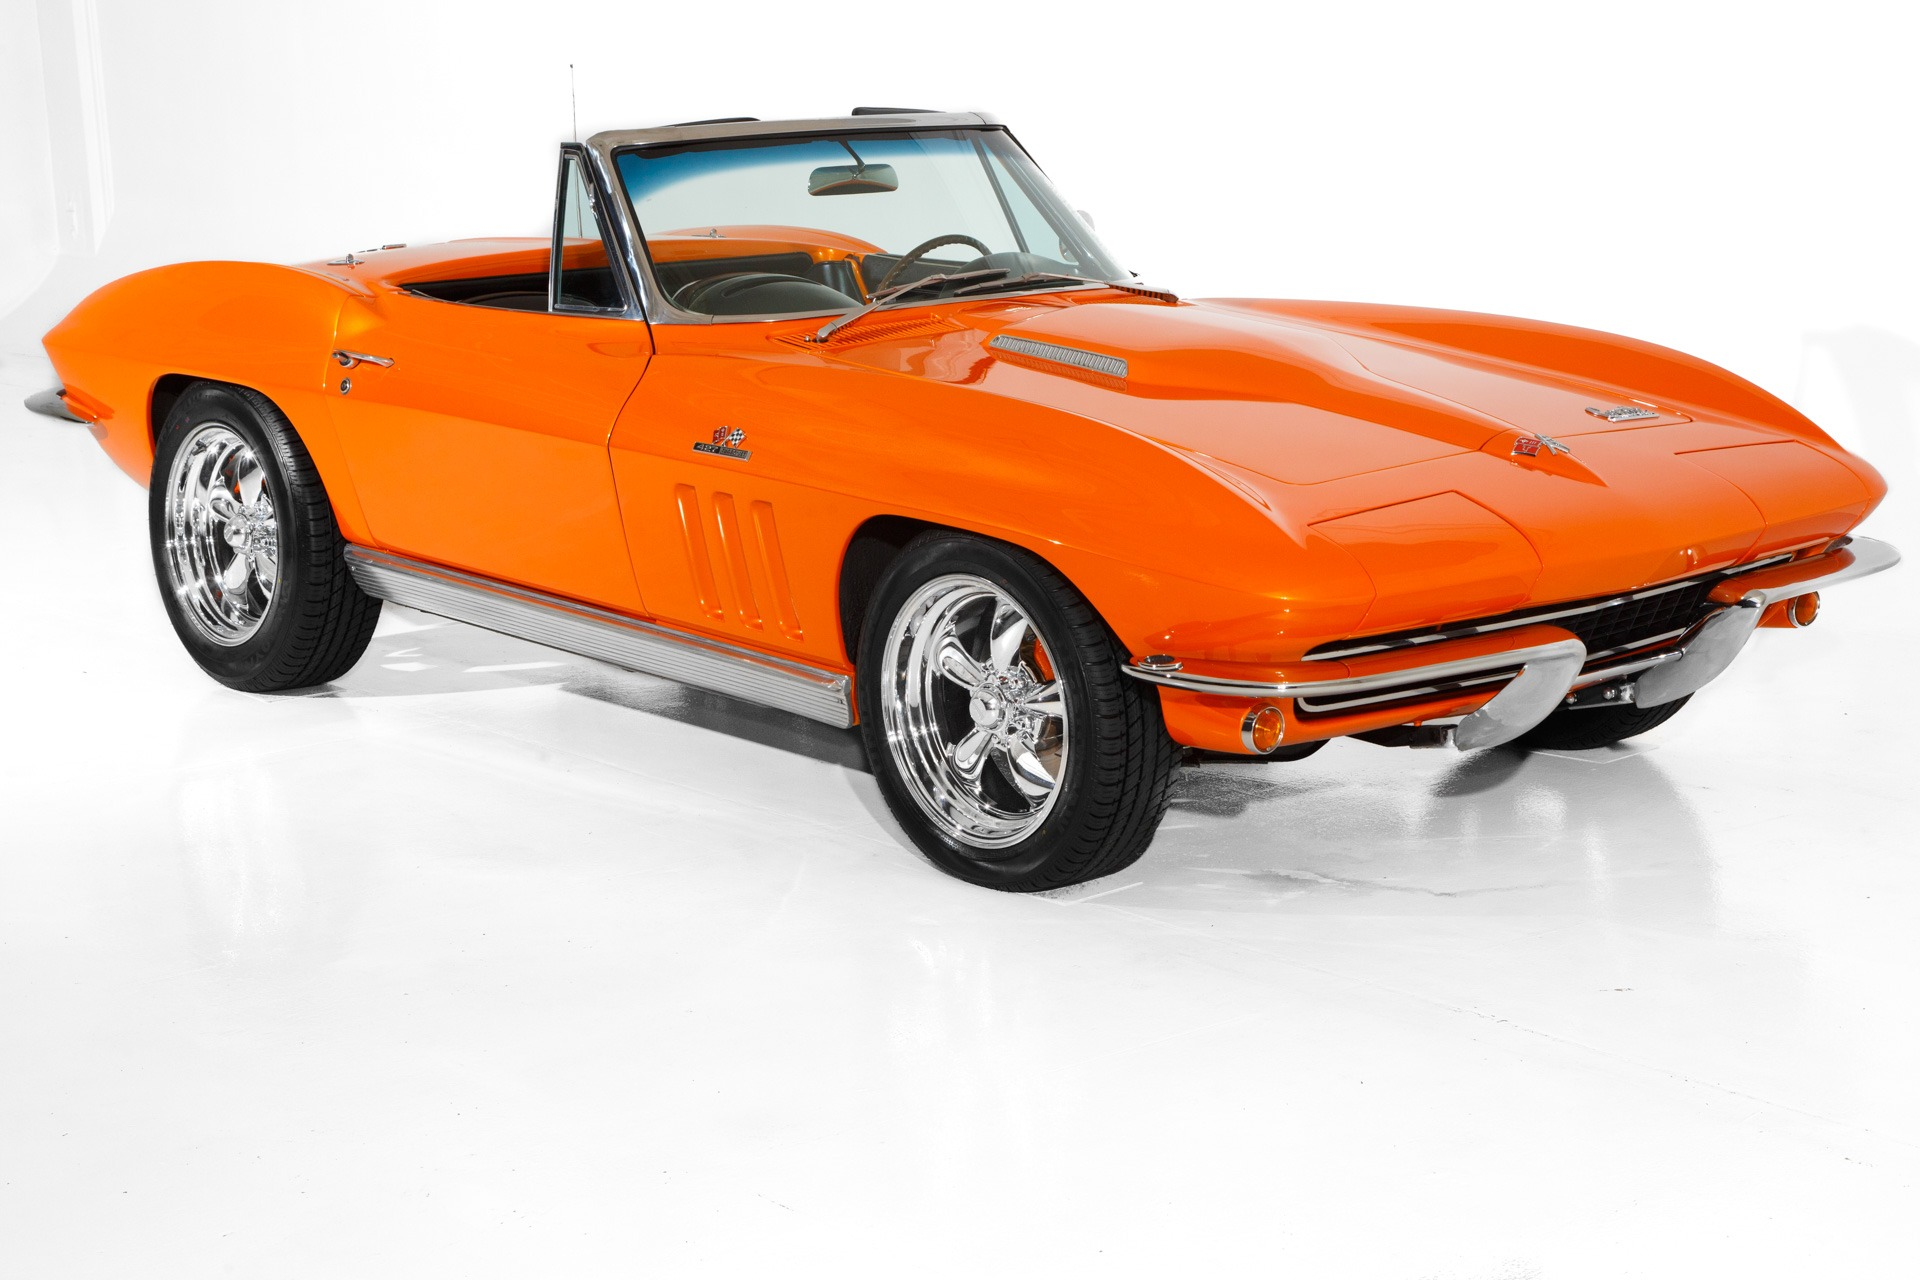 1966 Chevrolet Corvette Tangerine Dream ZZ502